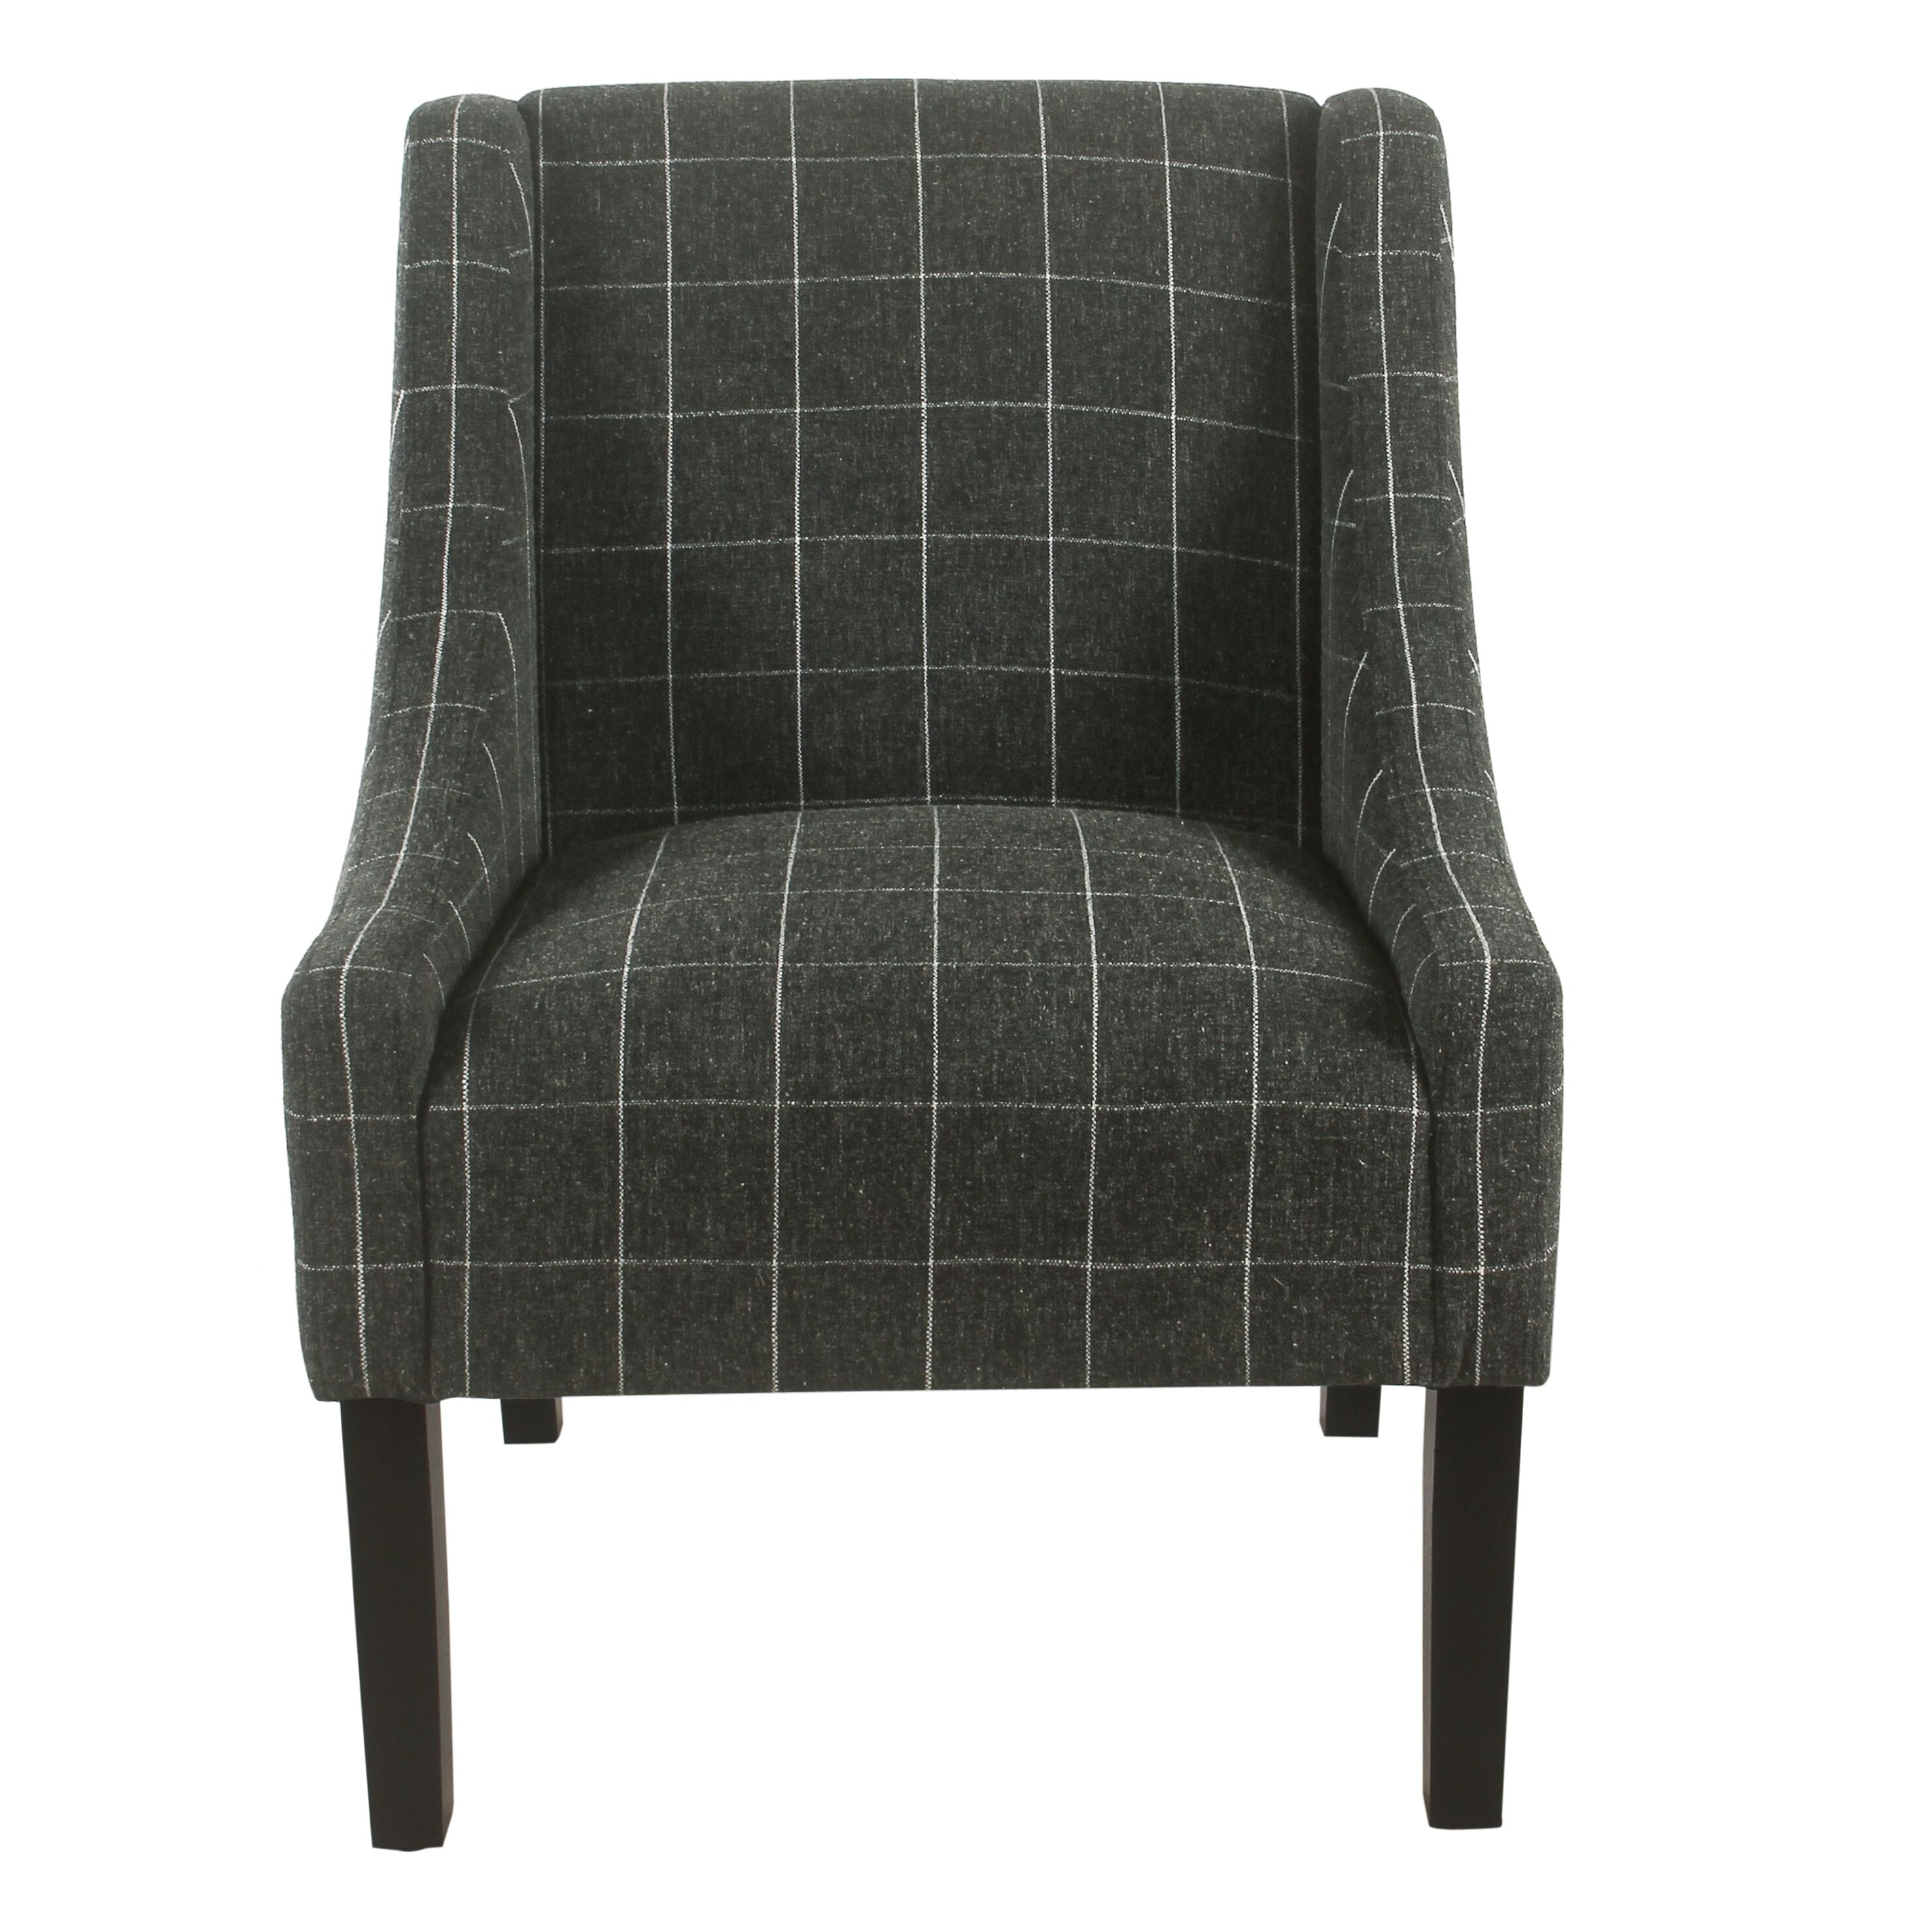 Shop Black Friday Deals On Homepop Modern Swoop Arm Accent Chair Black Windowpane On Sale Overstock 22469023